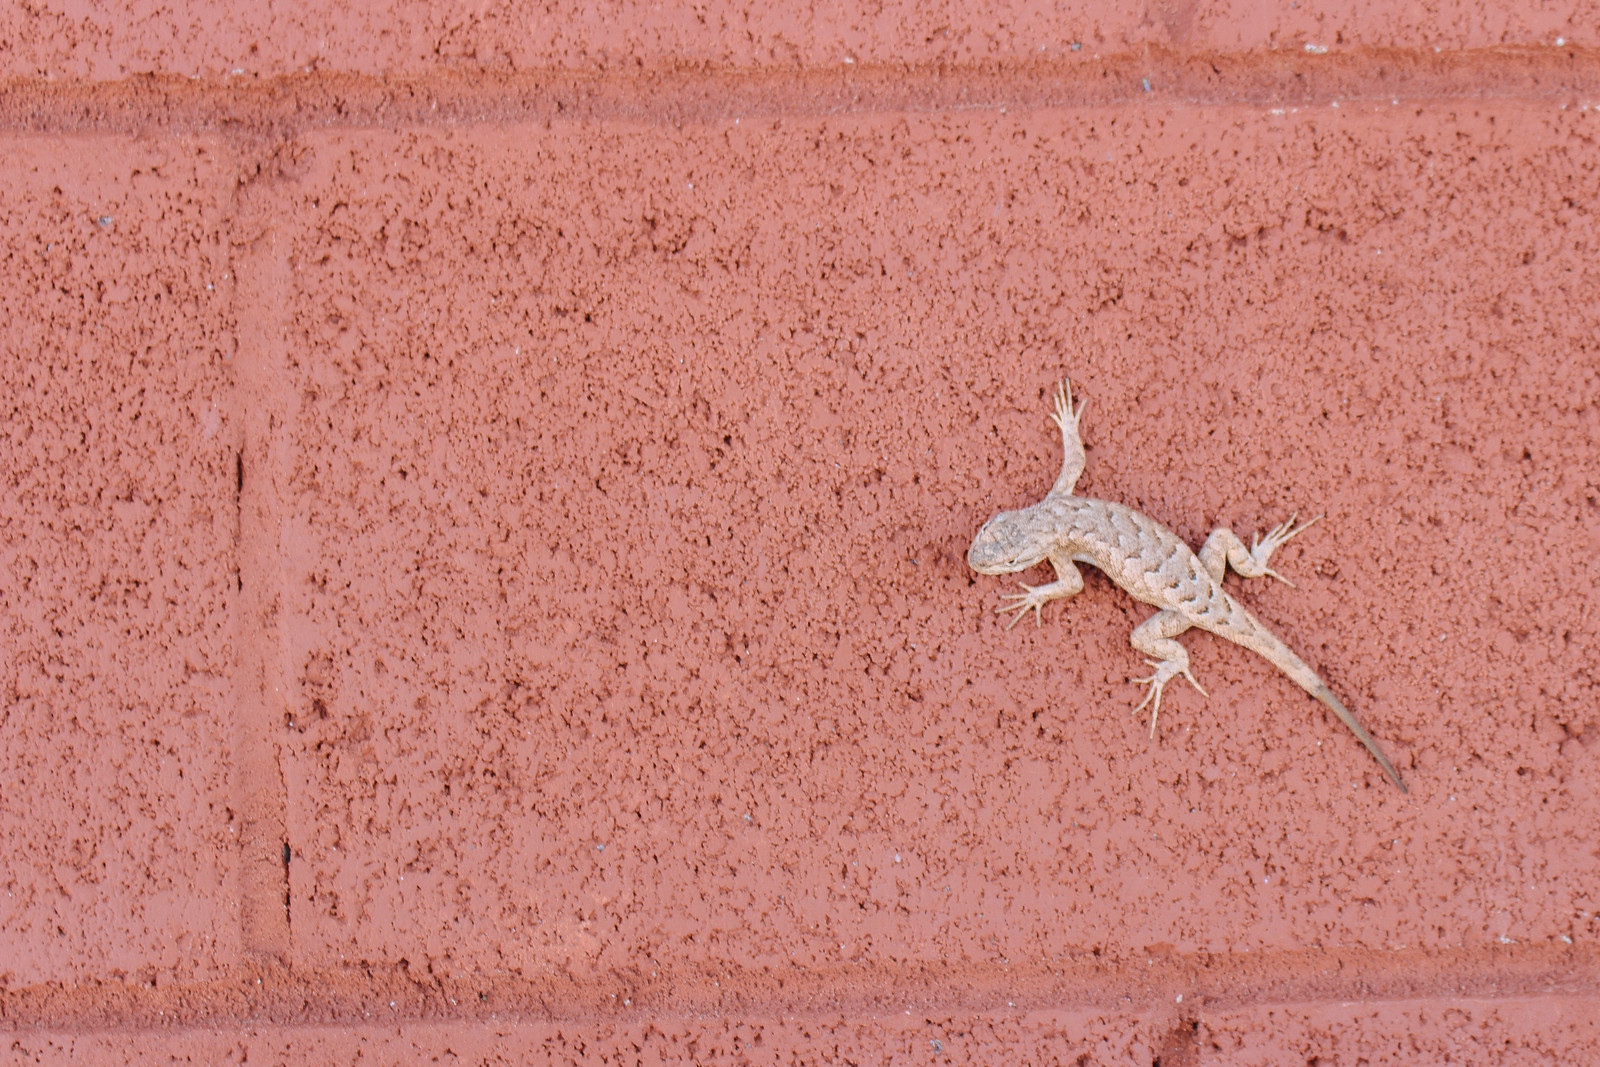 Pale brown lizard on a red brick wall at Homolovi State Park in Arizona